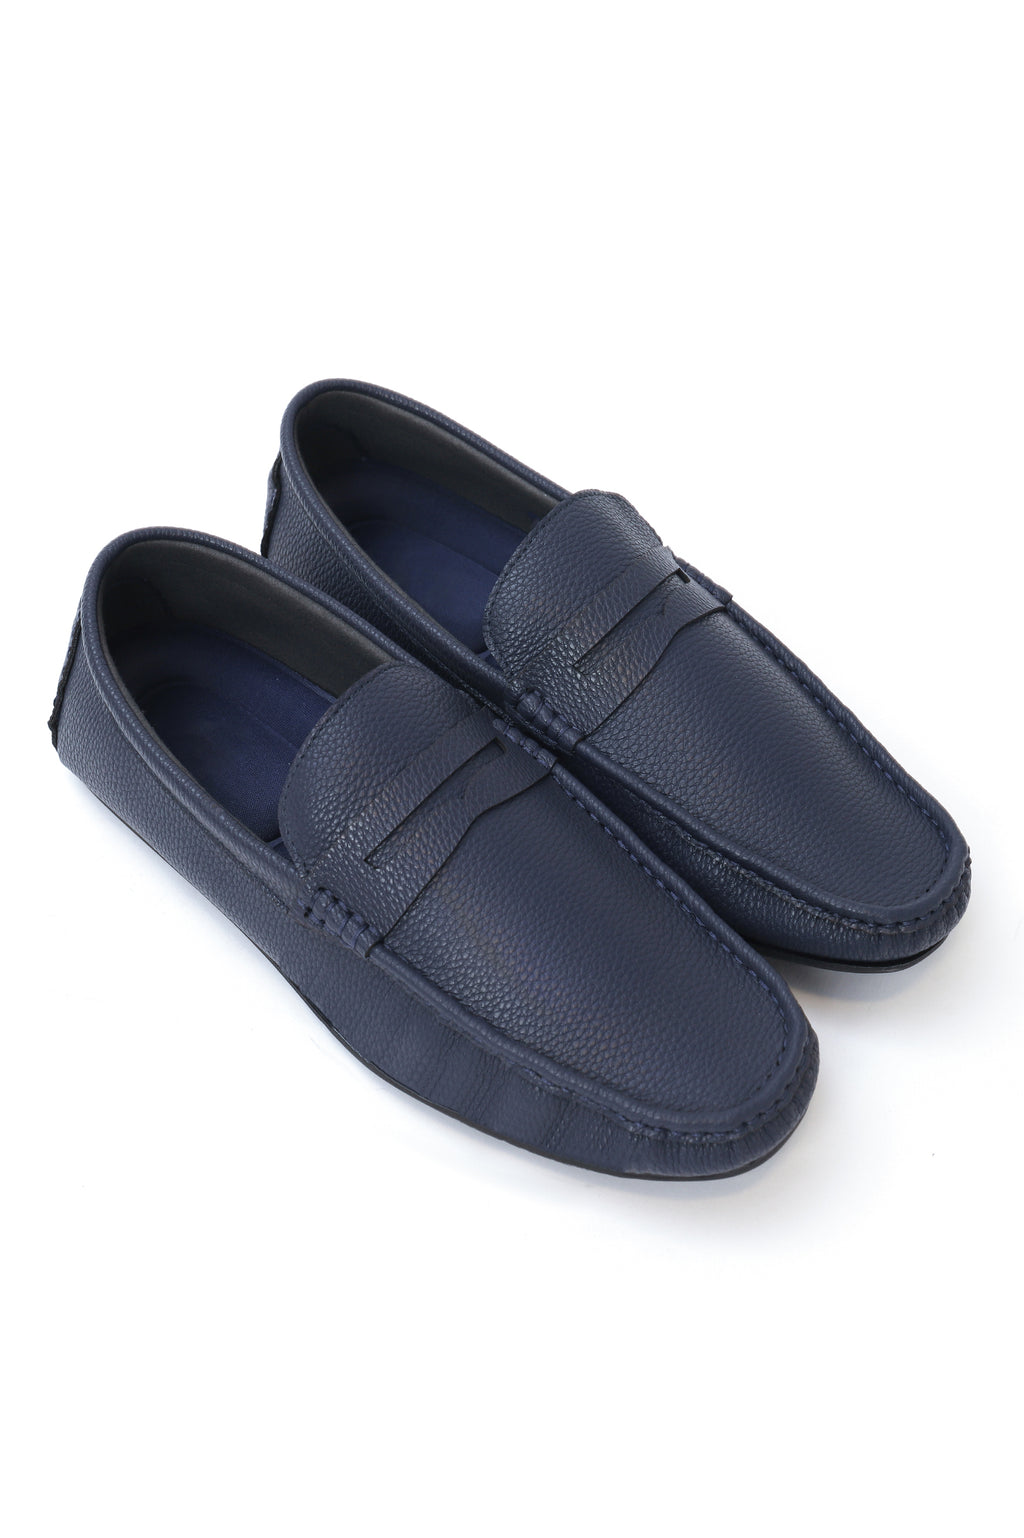 PENNY LOAFERS -NAVY